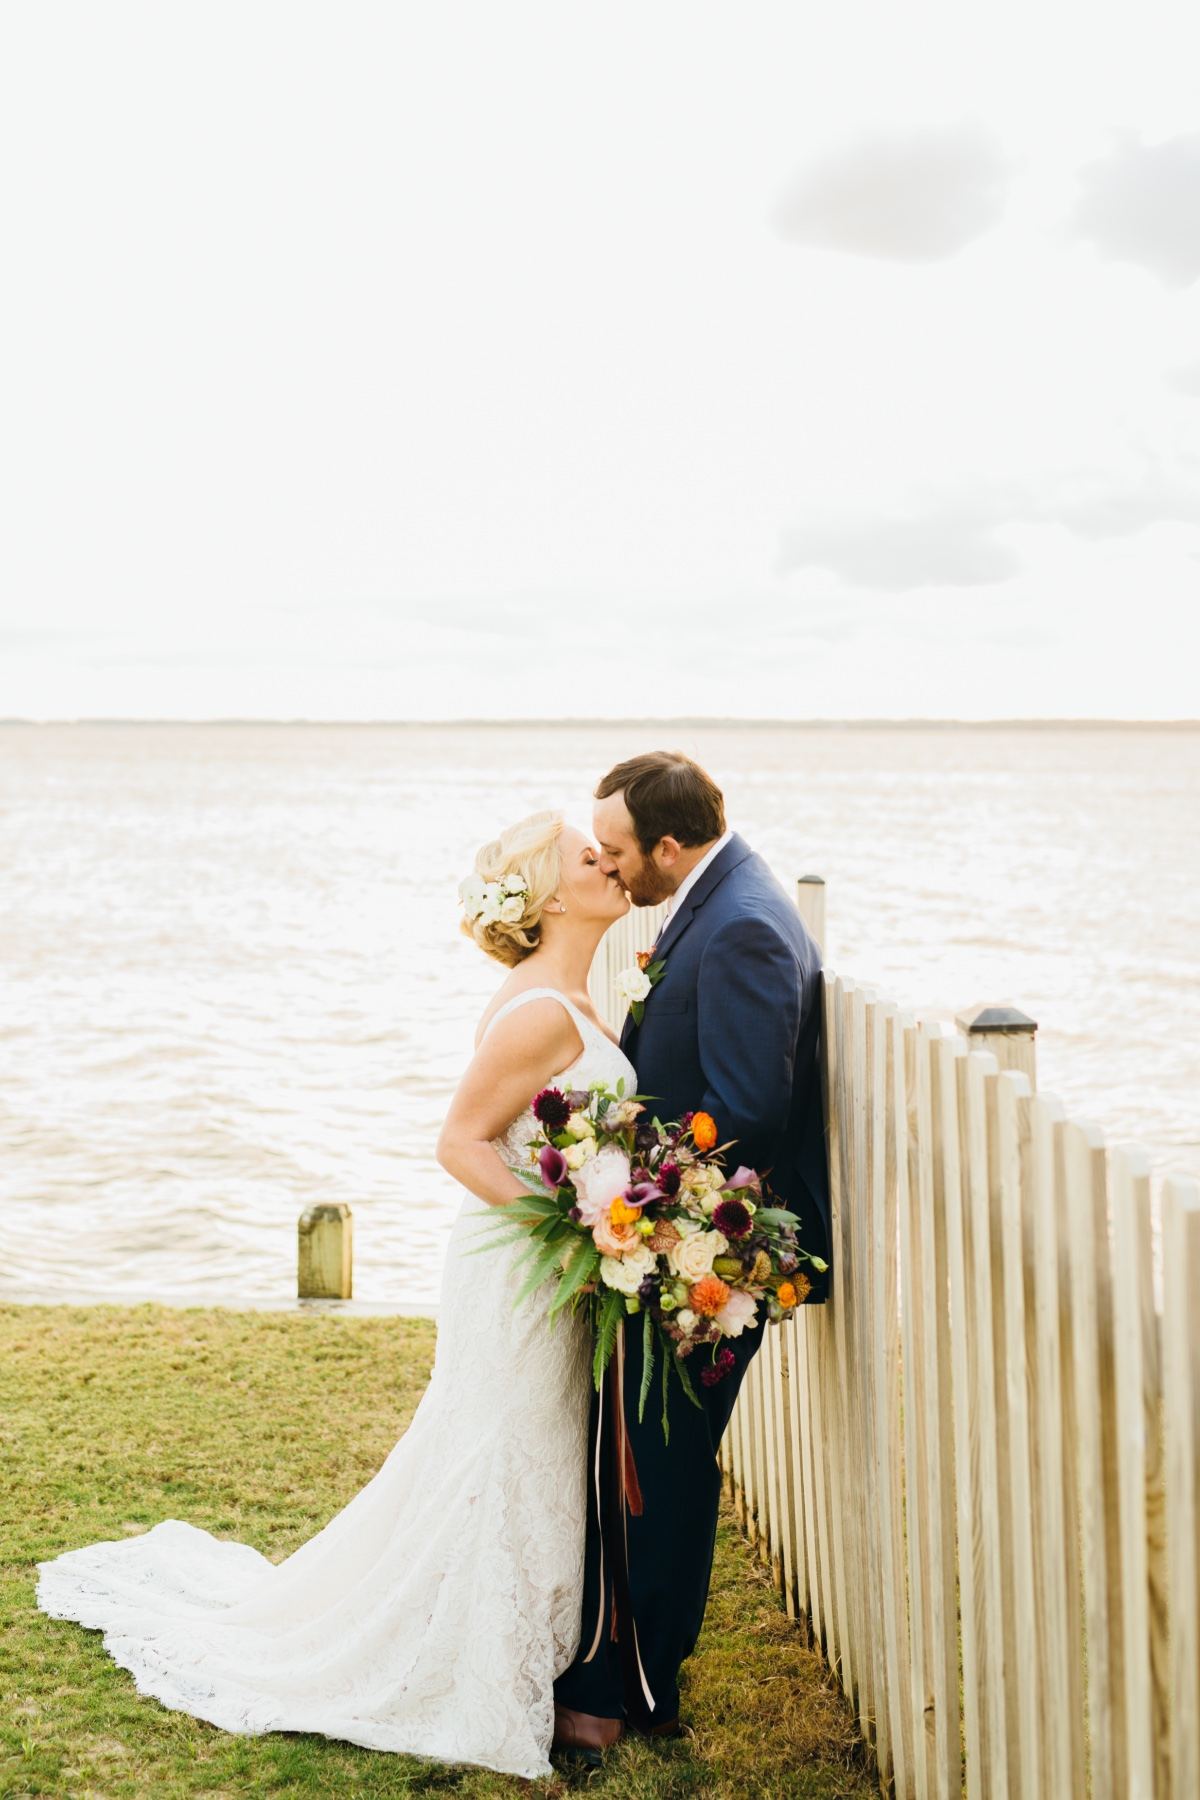 Sophisticated water front wedding